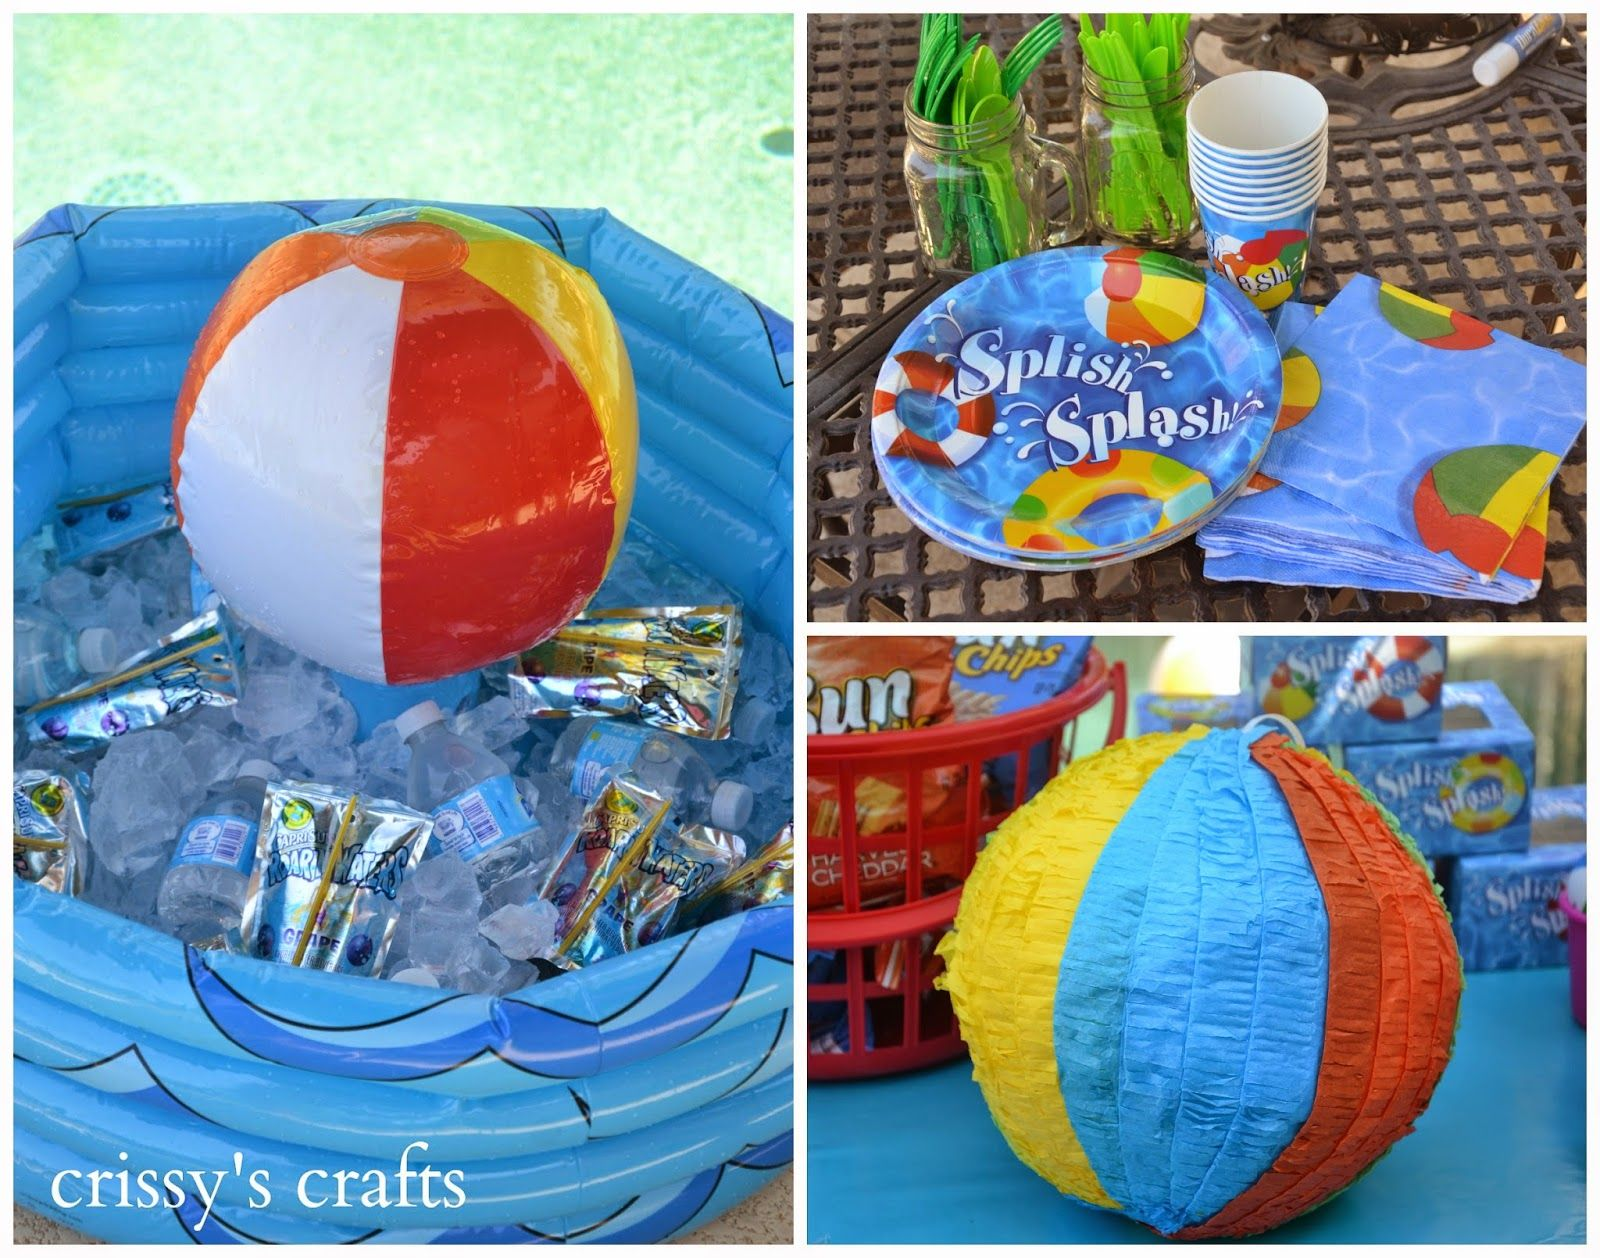 Decoraciones De Piscinas Crissy 39s Crafts Pool Party Summer 2014 Cumple Piscina